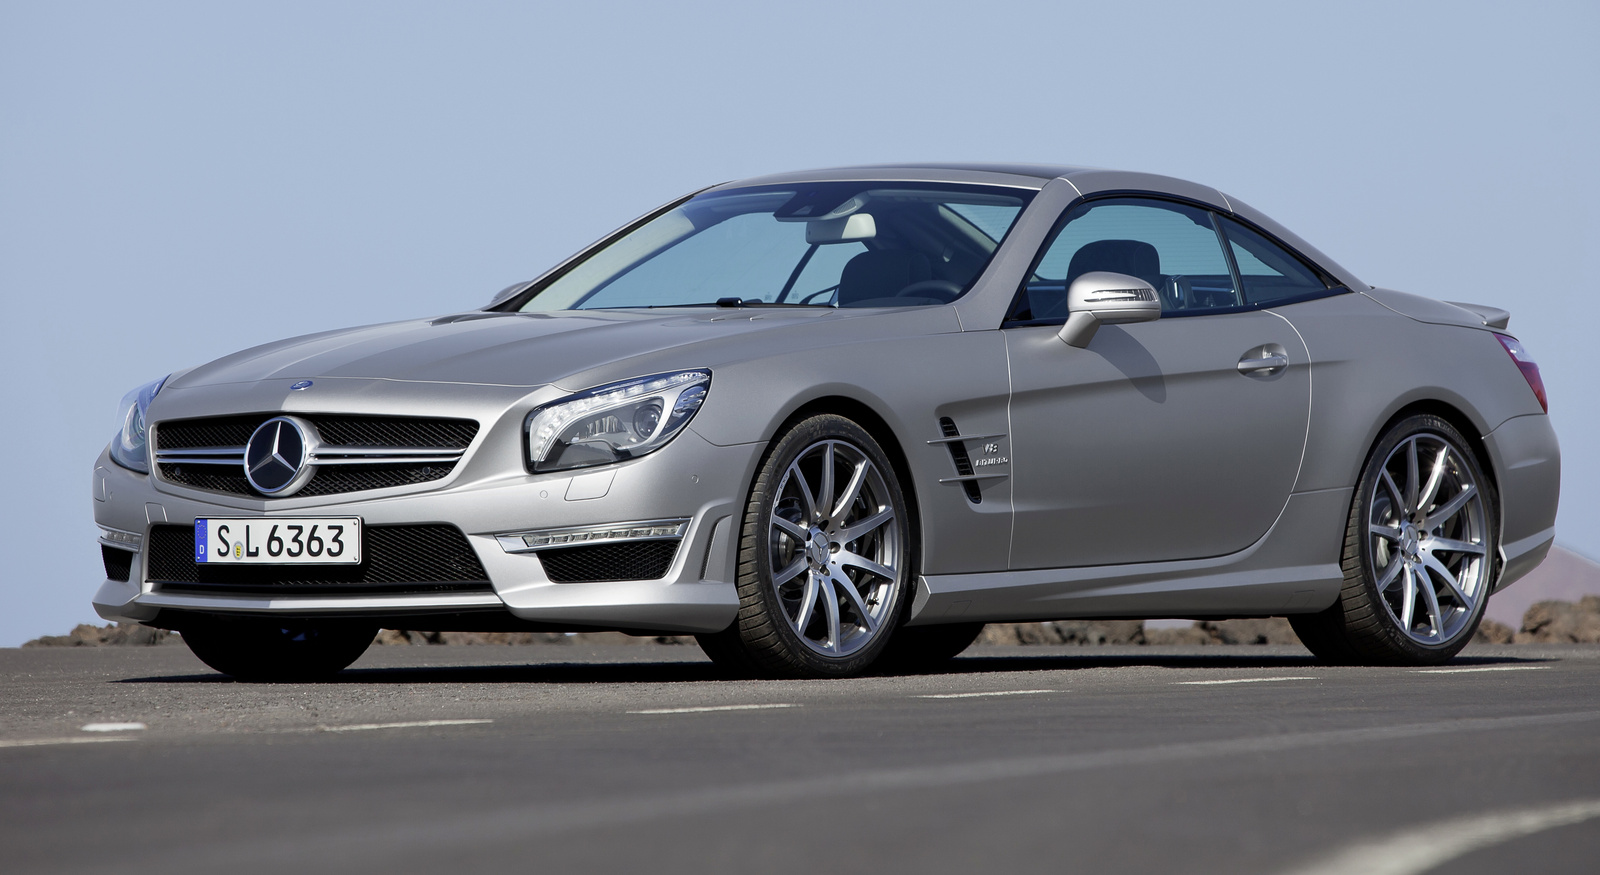 2014 mercedes benz sl class front quarter view exterior. Cars Review. Best American Auto & Cars Review